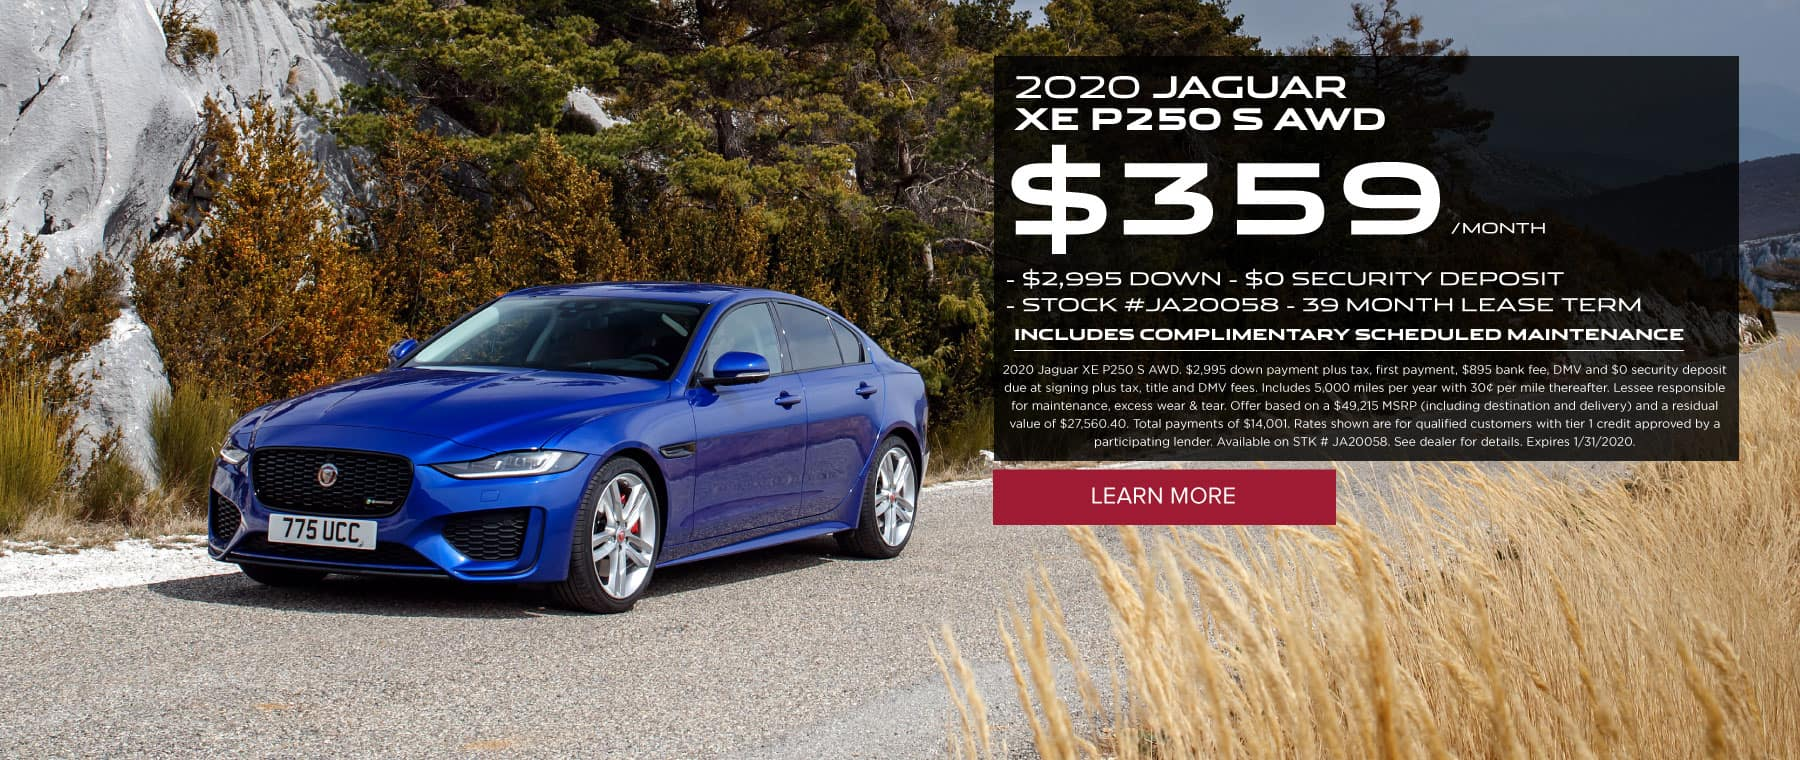 2020 JAGUAR XE P250 S AWD $359/MONTH $2,995 DOWN $0 SECURITY DEPOSIT STOCK #JA20058 39 MONTH LEASE TERM INCLUDES COMPLIMENTARY SCHEDULED MAINTENANCE 2020 Jaguar XE P250 S AWD. $2,995 down payment plus tax, first payment, $895 bank fee, DMV and $0 security deposit due at signing plus tax, title and DMV fees. Includes 5,000 miles per year with 30¢ per mile thereafter. Lessee responsible for maintenance, excess wear & tear. Offer based on a $49,215 MSRP (including destination and delivery) and a residual value of $27,560.40. Total payments of $14,001. Rates shown are for qualified customers with tier 1 credit approved by a participating lender. Available on STK # JA20058. See dealer for details. Expires 1/31/2020. Click to learn more. Blue XE on road with trees and field surrounding.